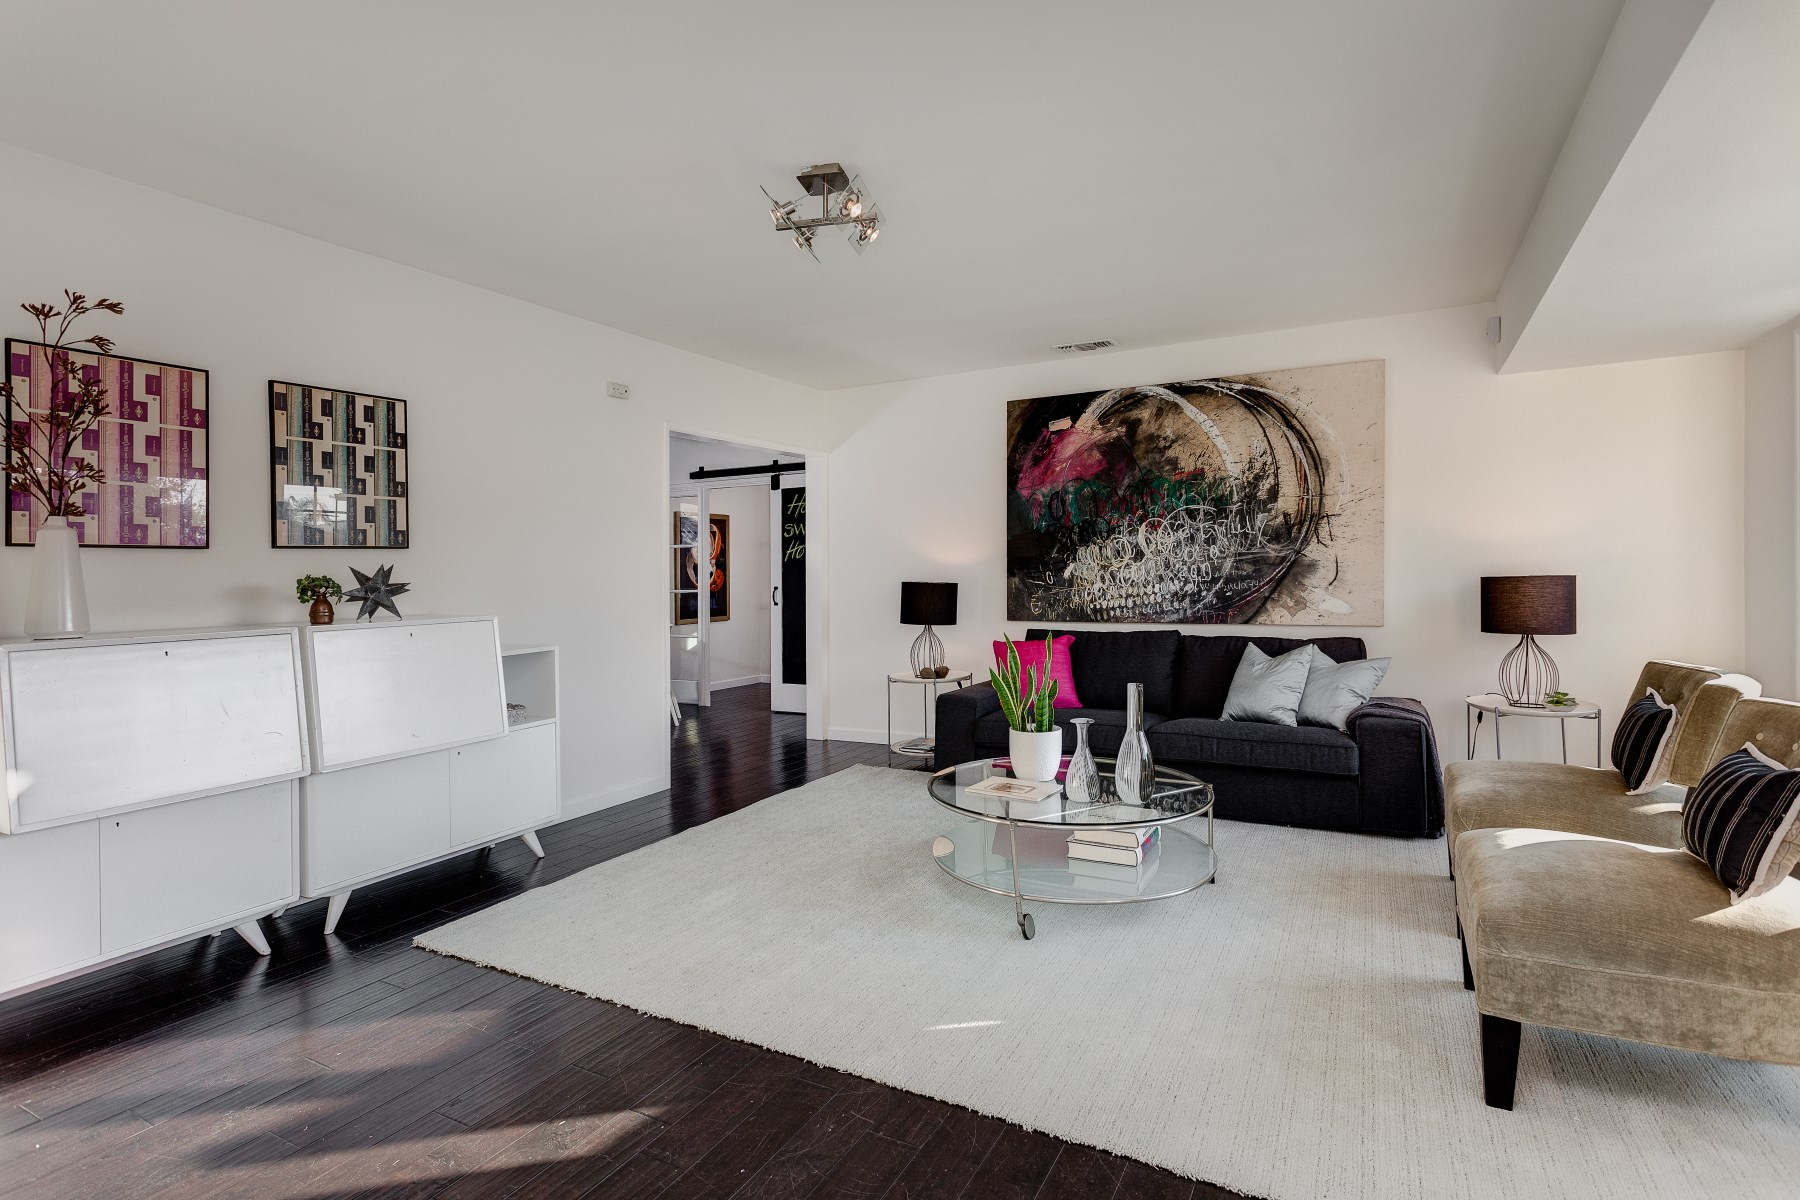 Single Family Home for Sale at 2062 Parnell Way Pasadena, California 91103 United States